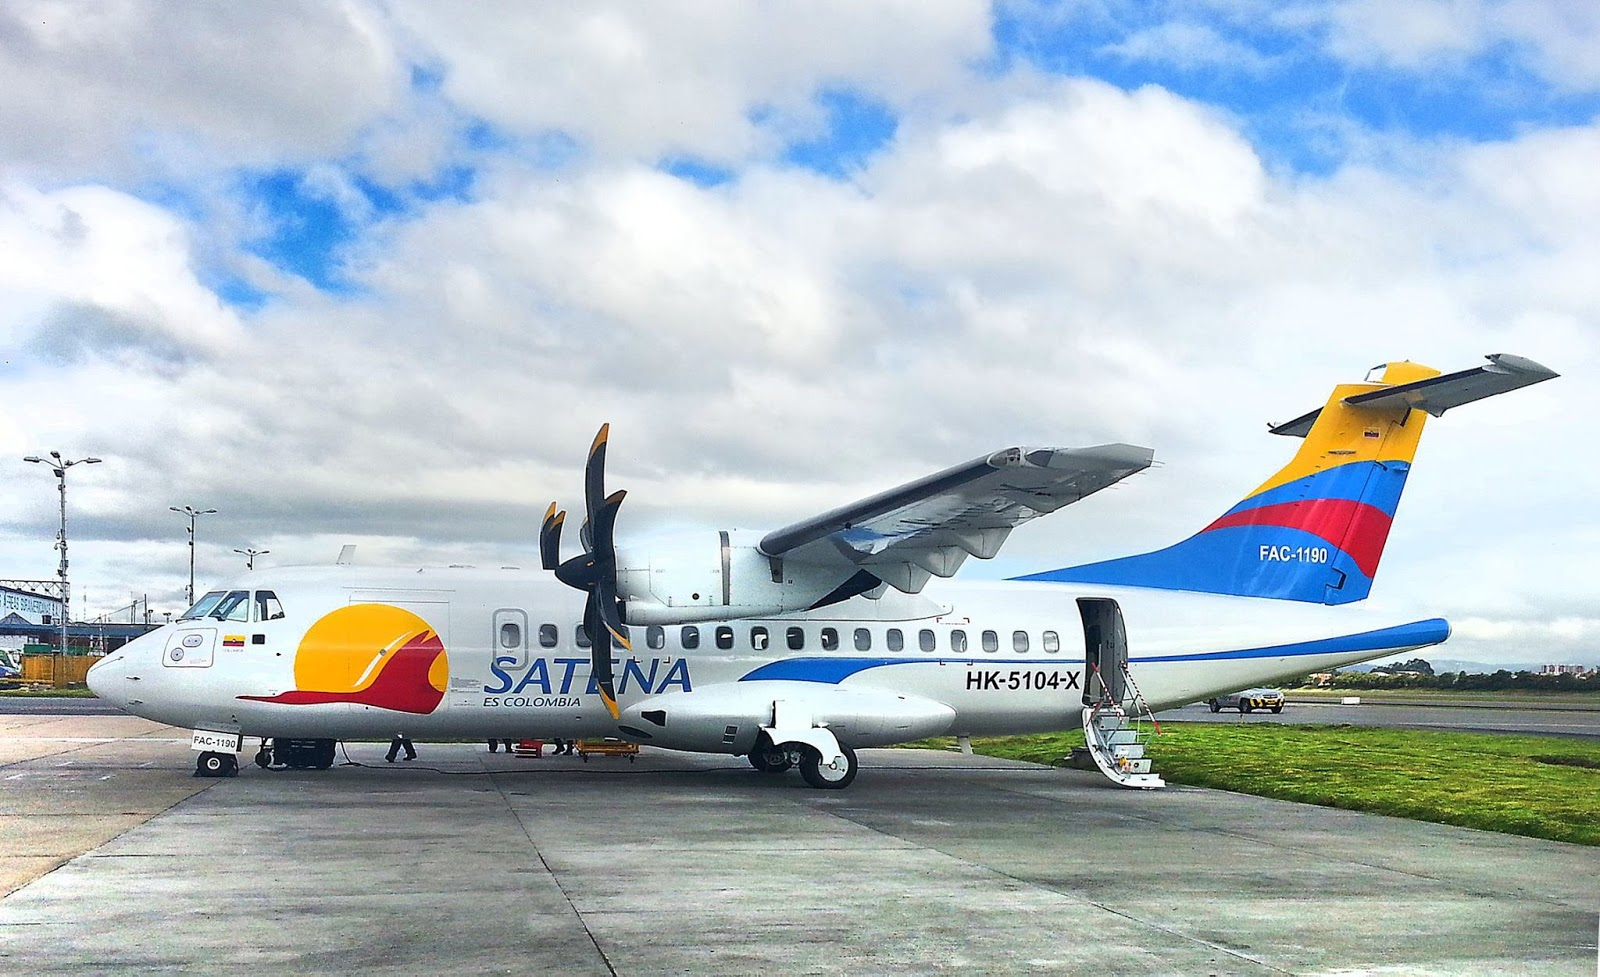 ATR 42-500 recientemente incorporado a la flota de SATENA